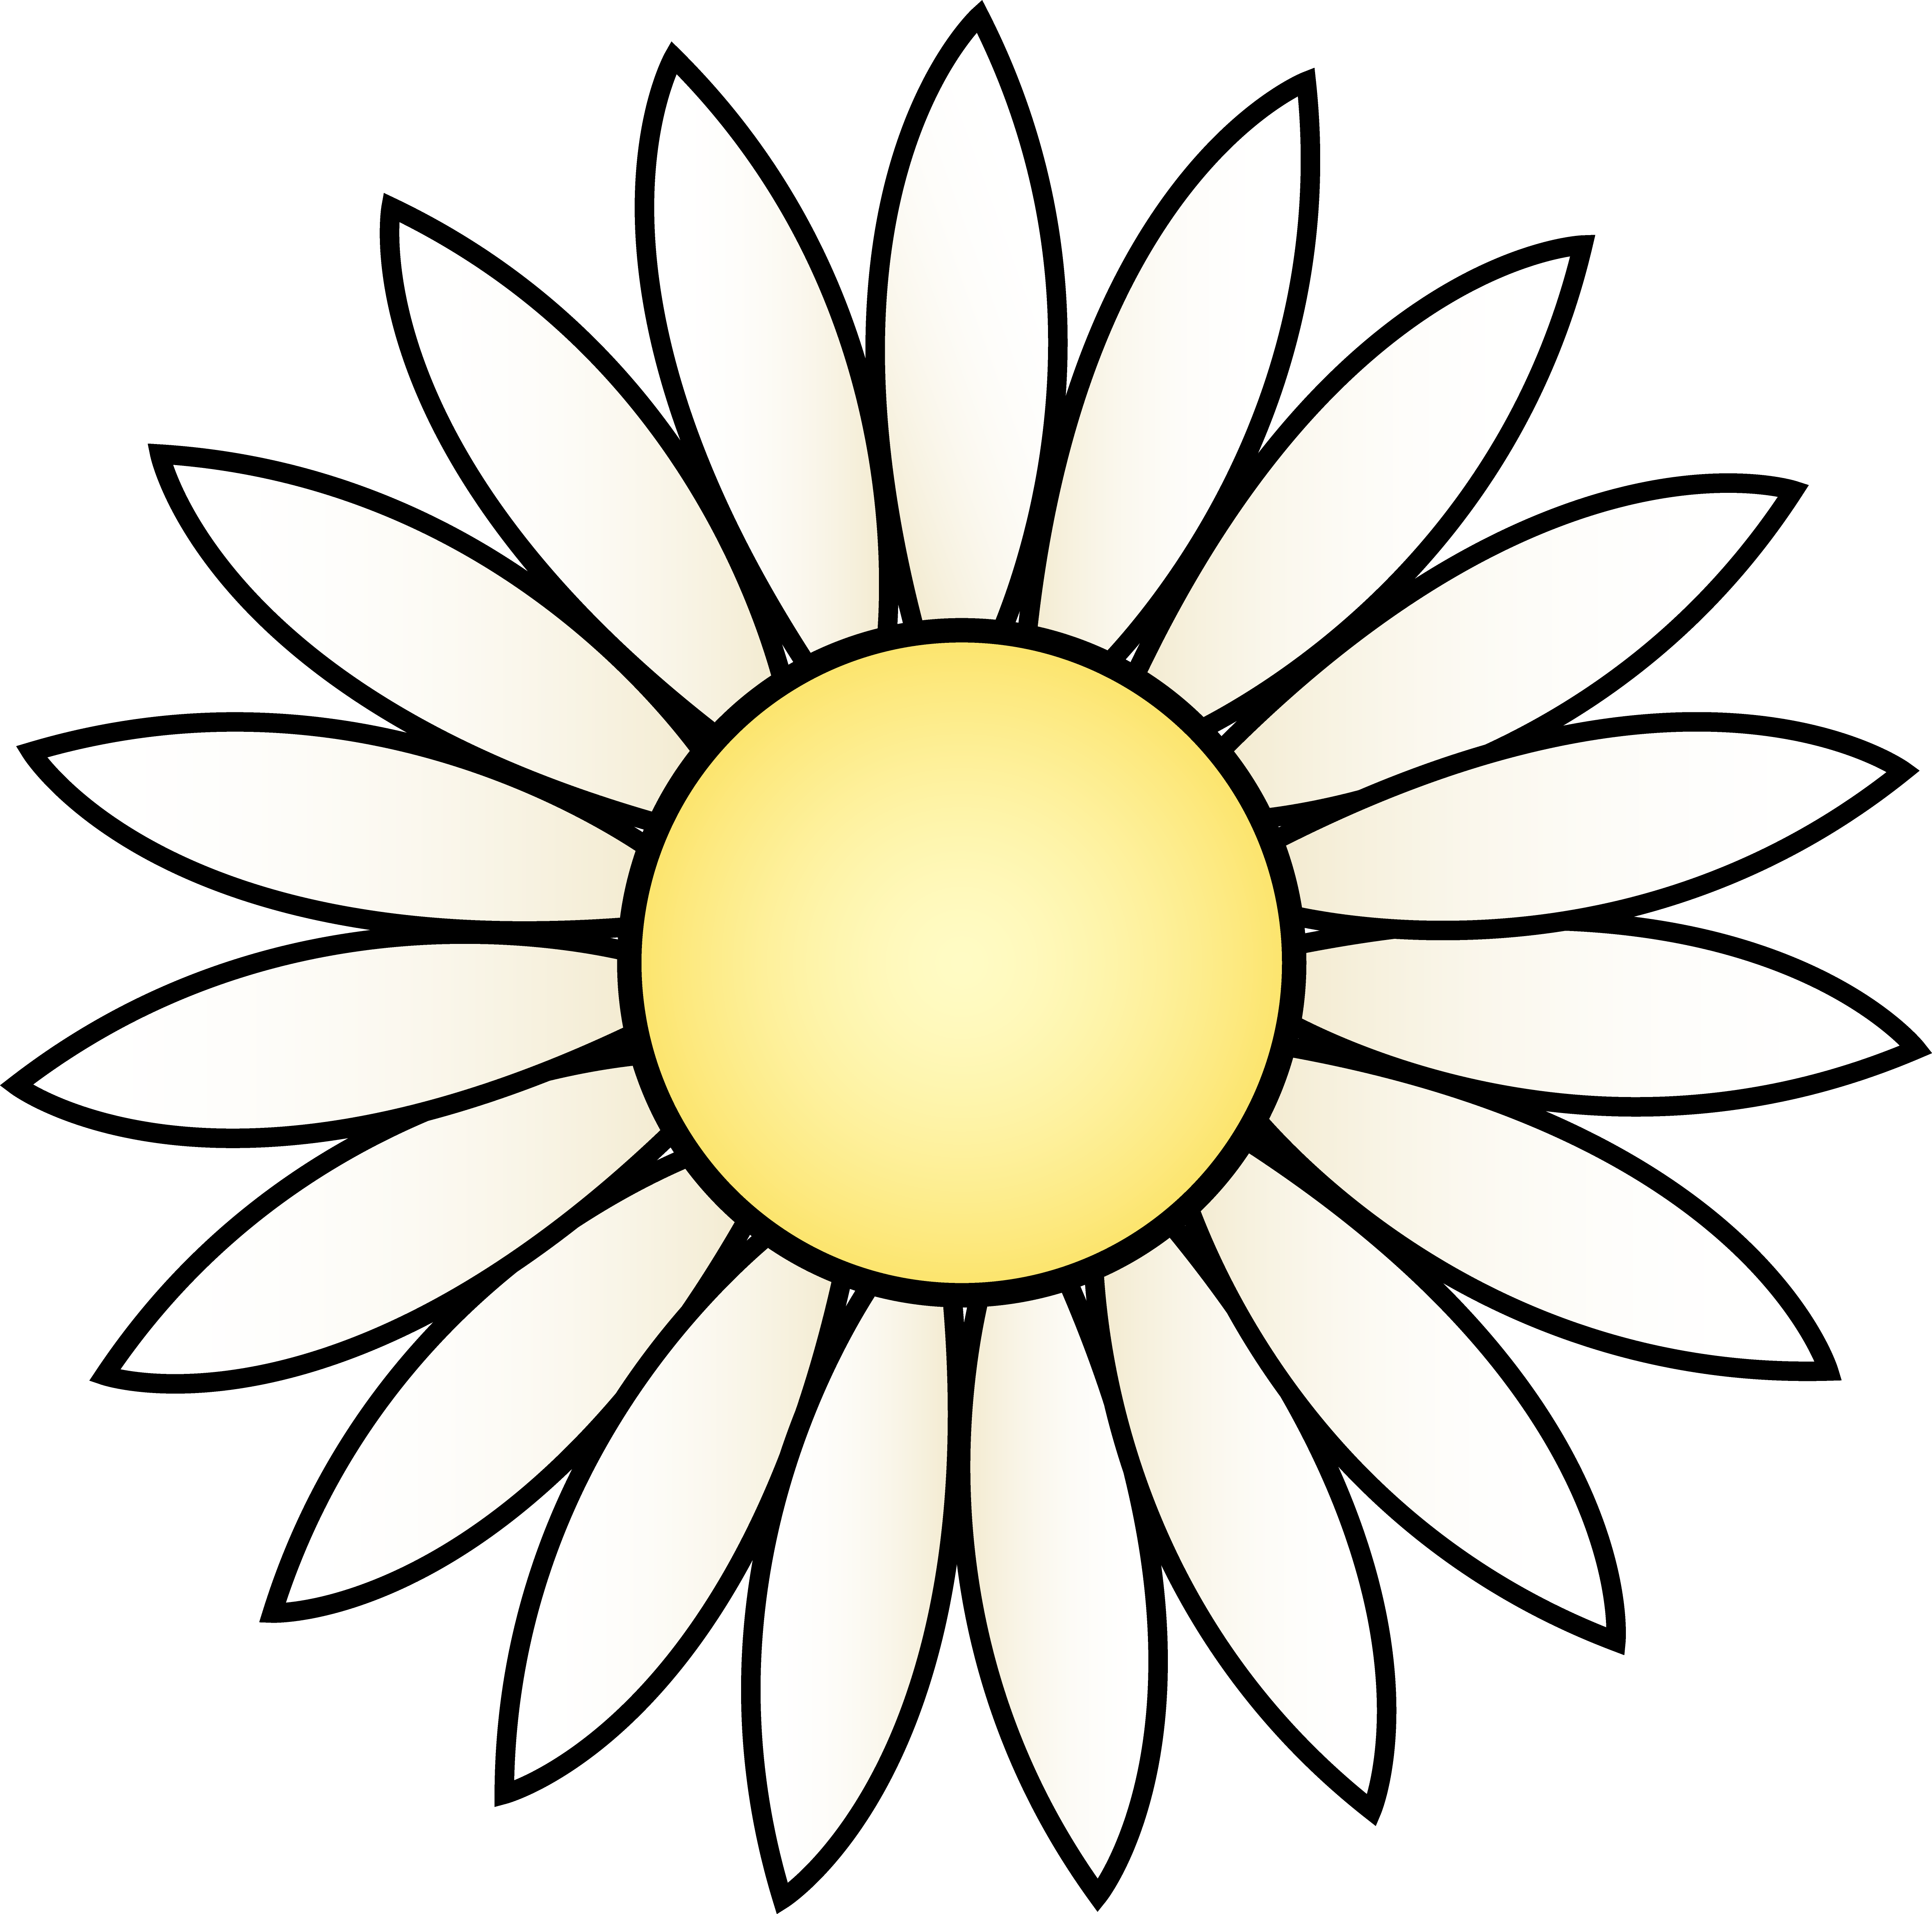 Daisy Flower Template